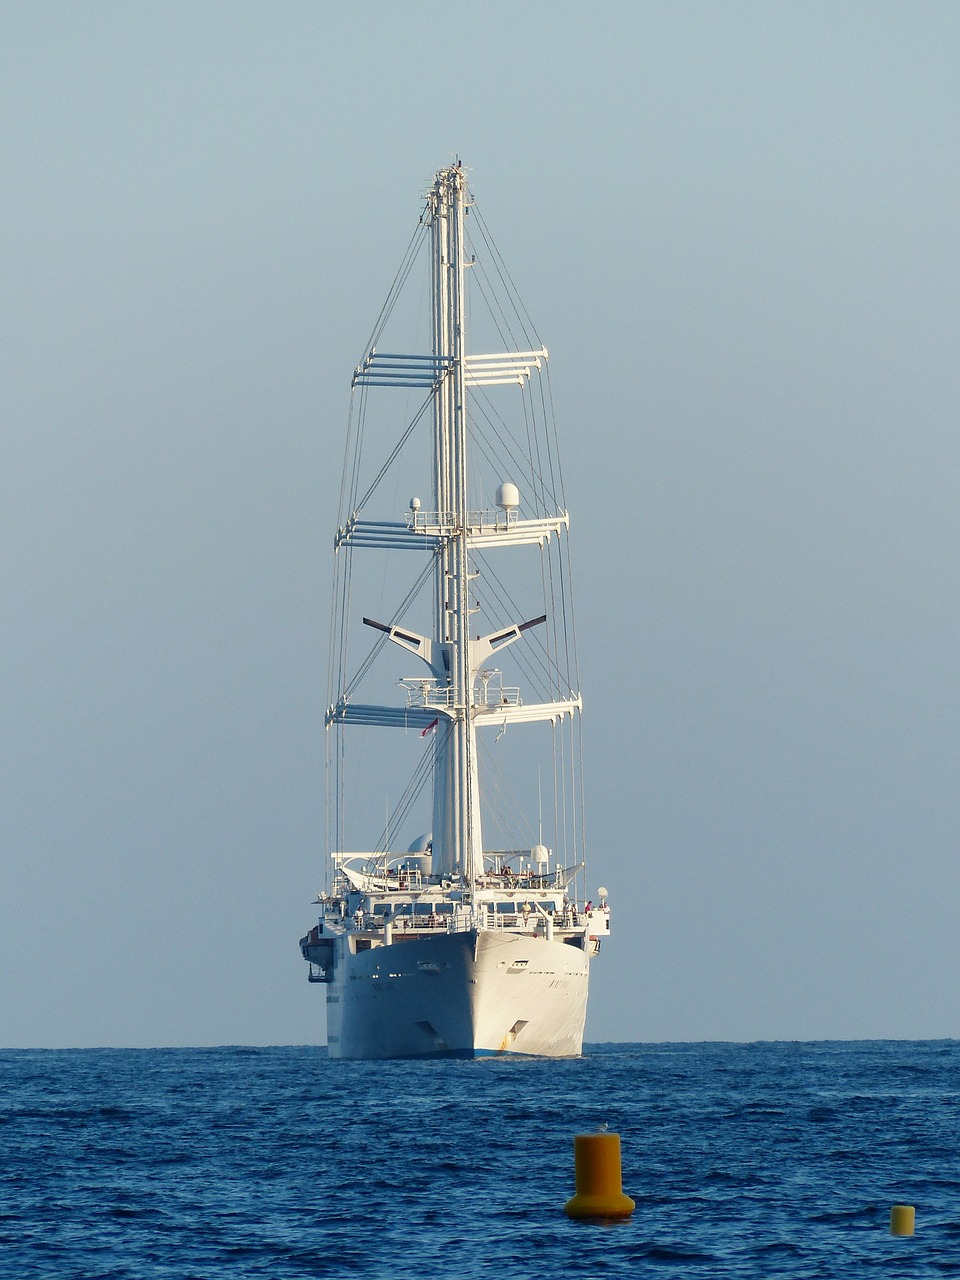 sailing vessel ozeanriese mega yacht free photo